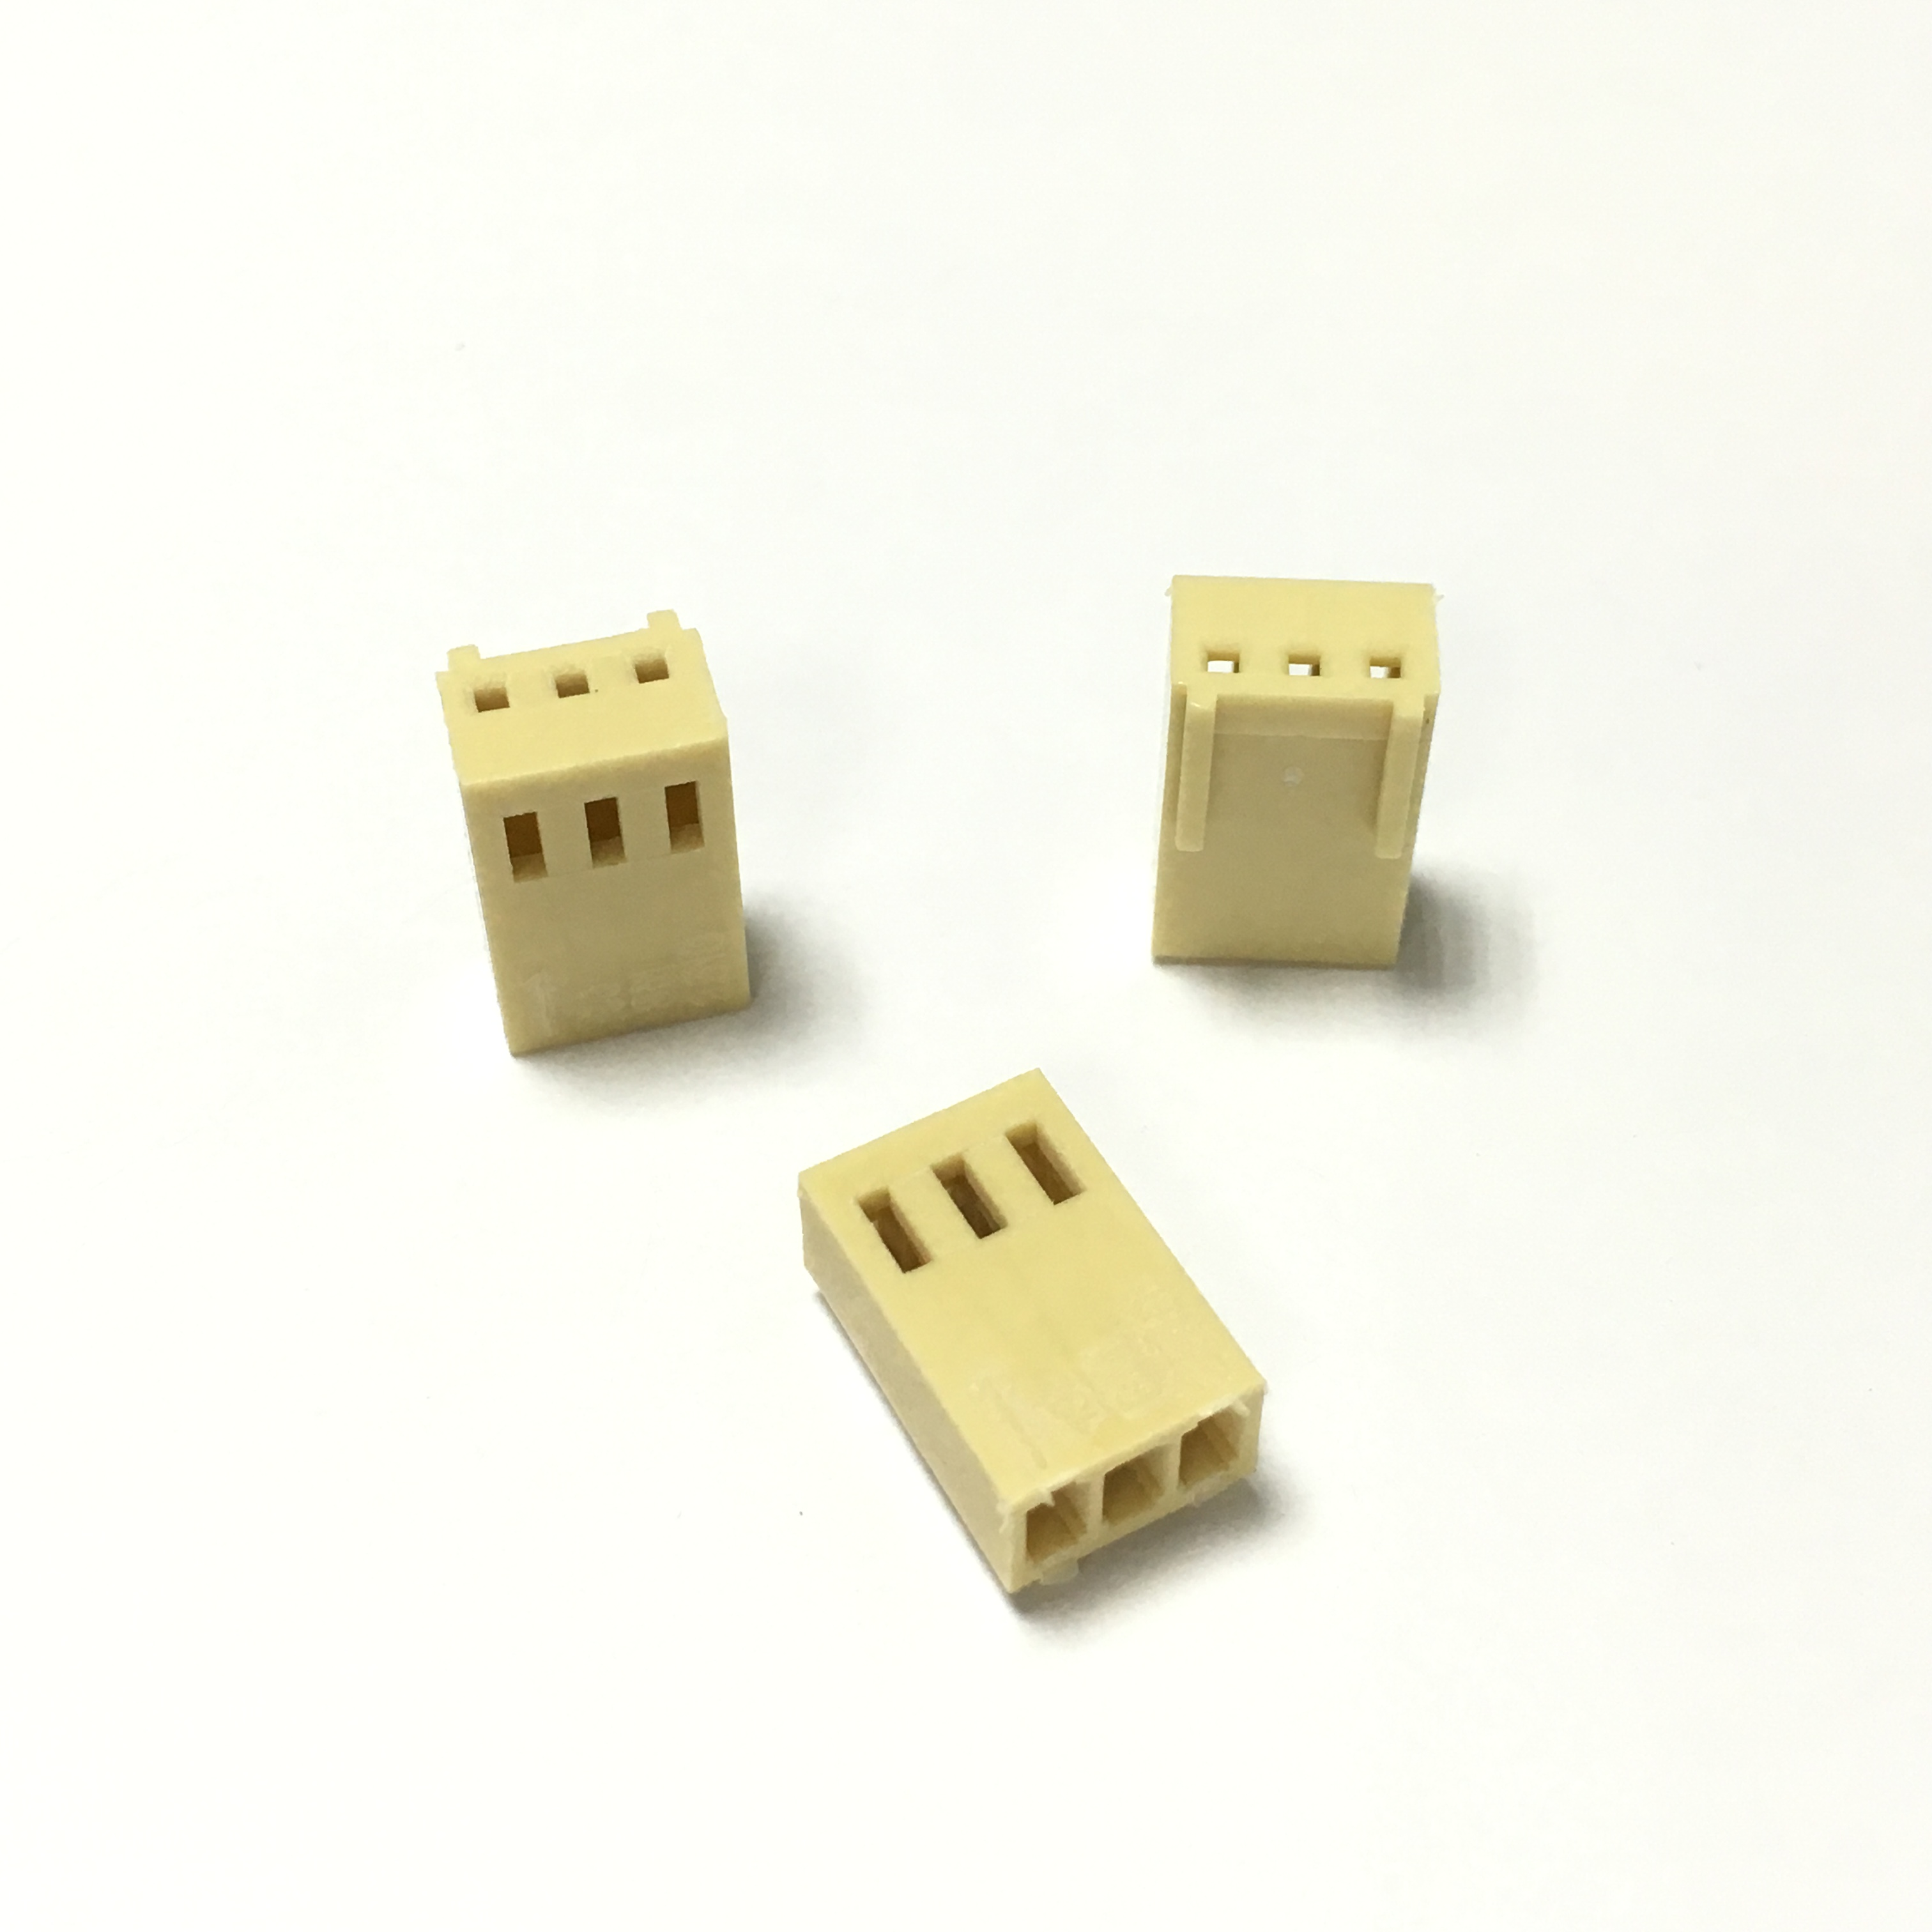 KF2510 2/3/4/5/6/7/8/9/10 Pin 2.54mm Pitch Plastic Head Wire Cable Housing Female Pin Connectors Adaptor